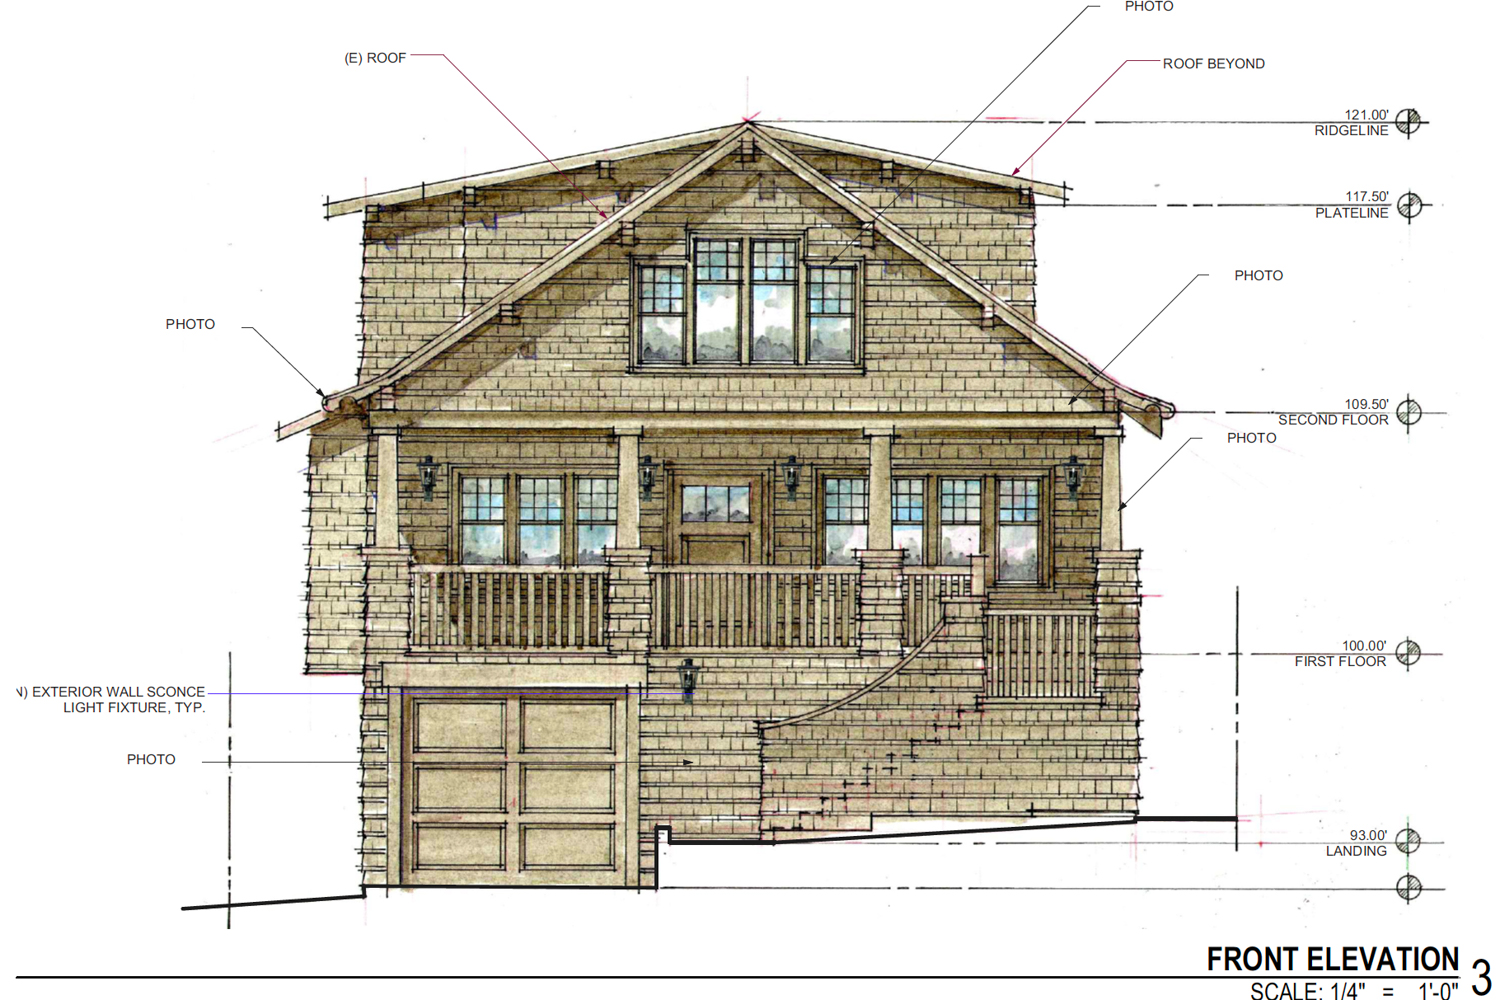 Front elevation of 369 MacArthur Boulevard, drawing by AB Design Studio